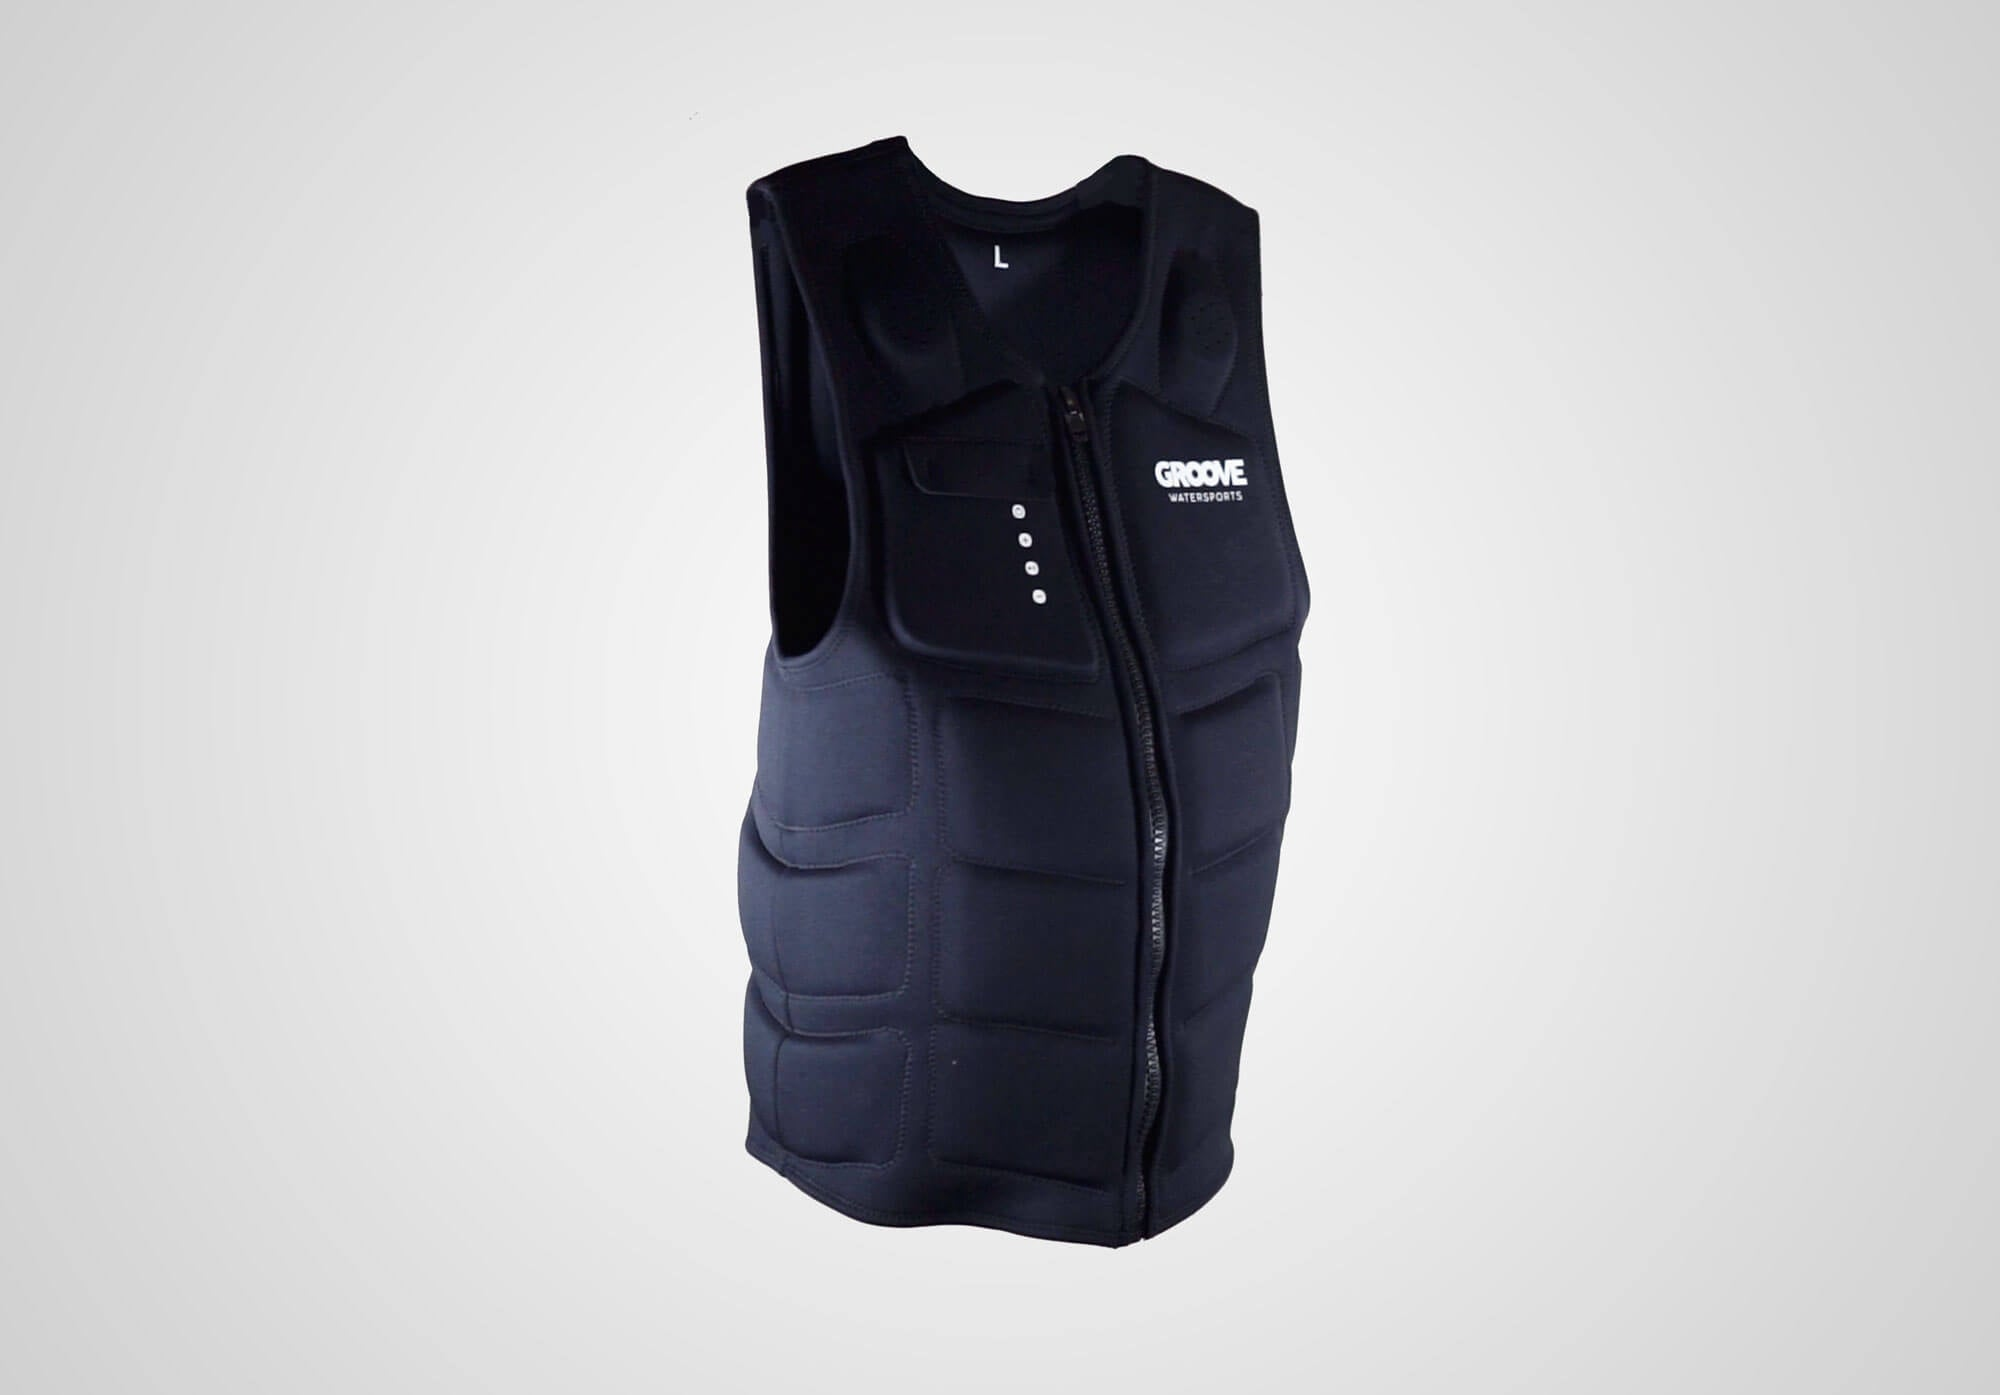 Groove Vest | Try Before You Buy (Free Shipping)